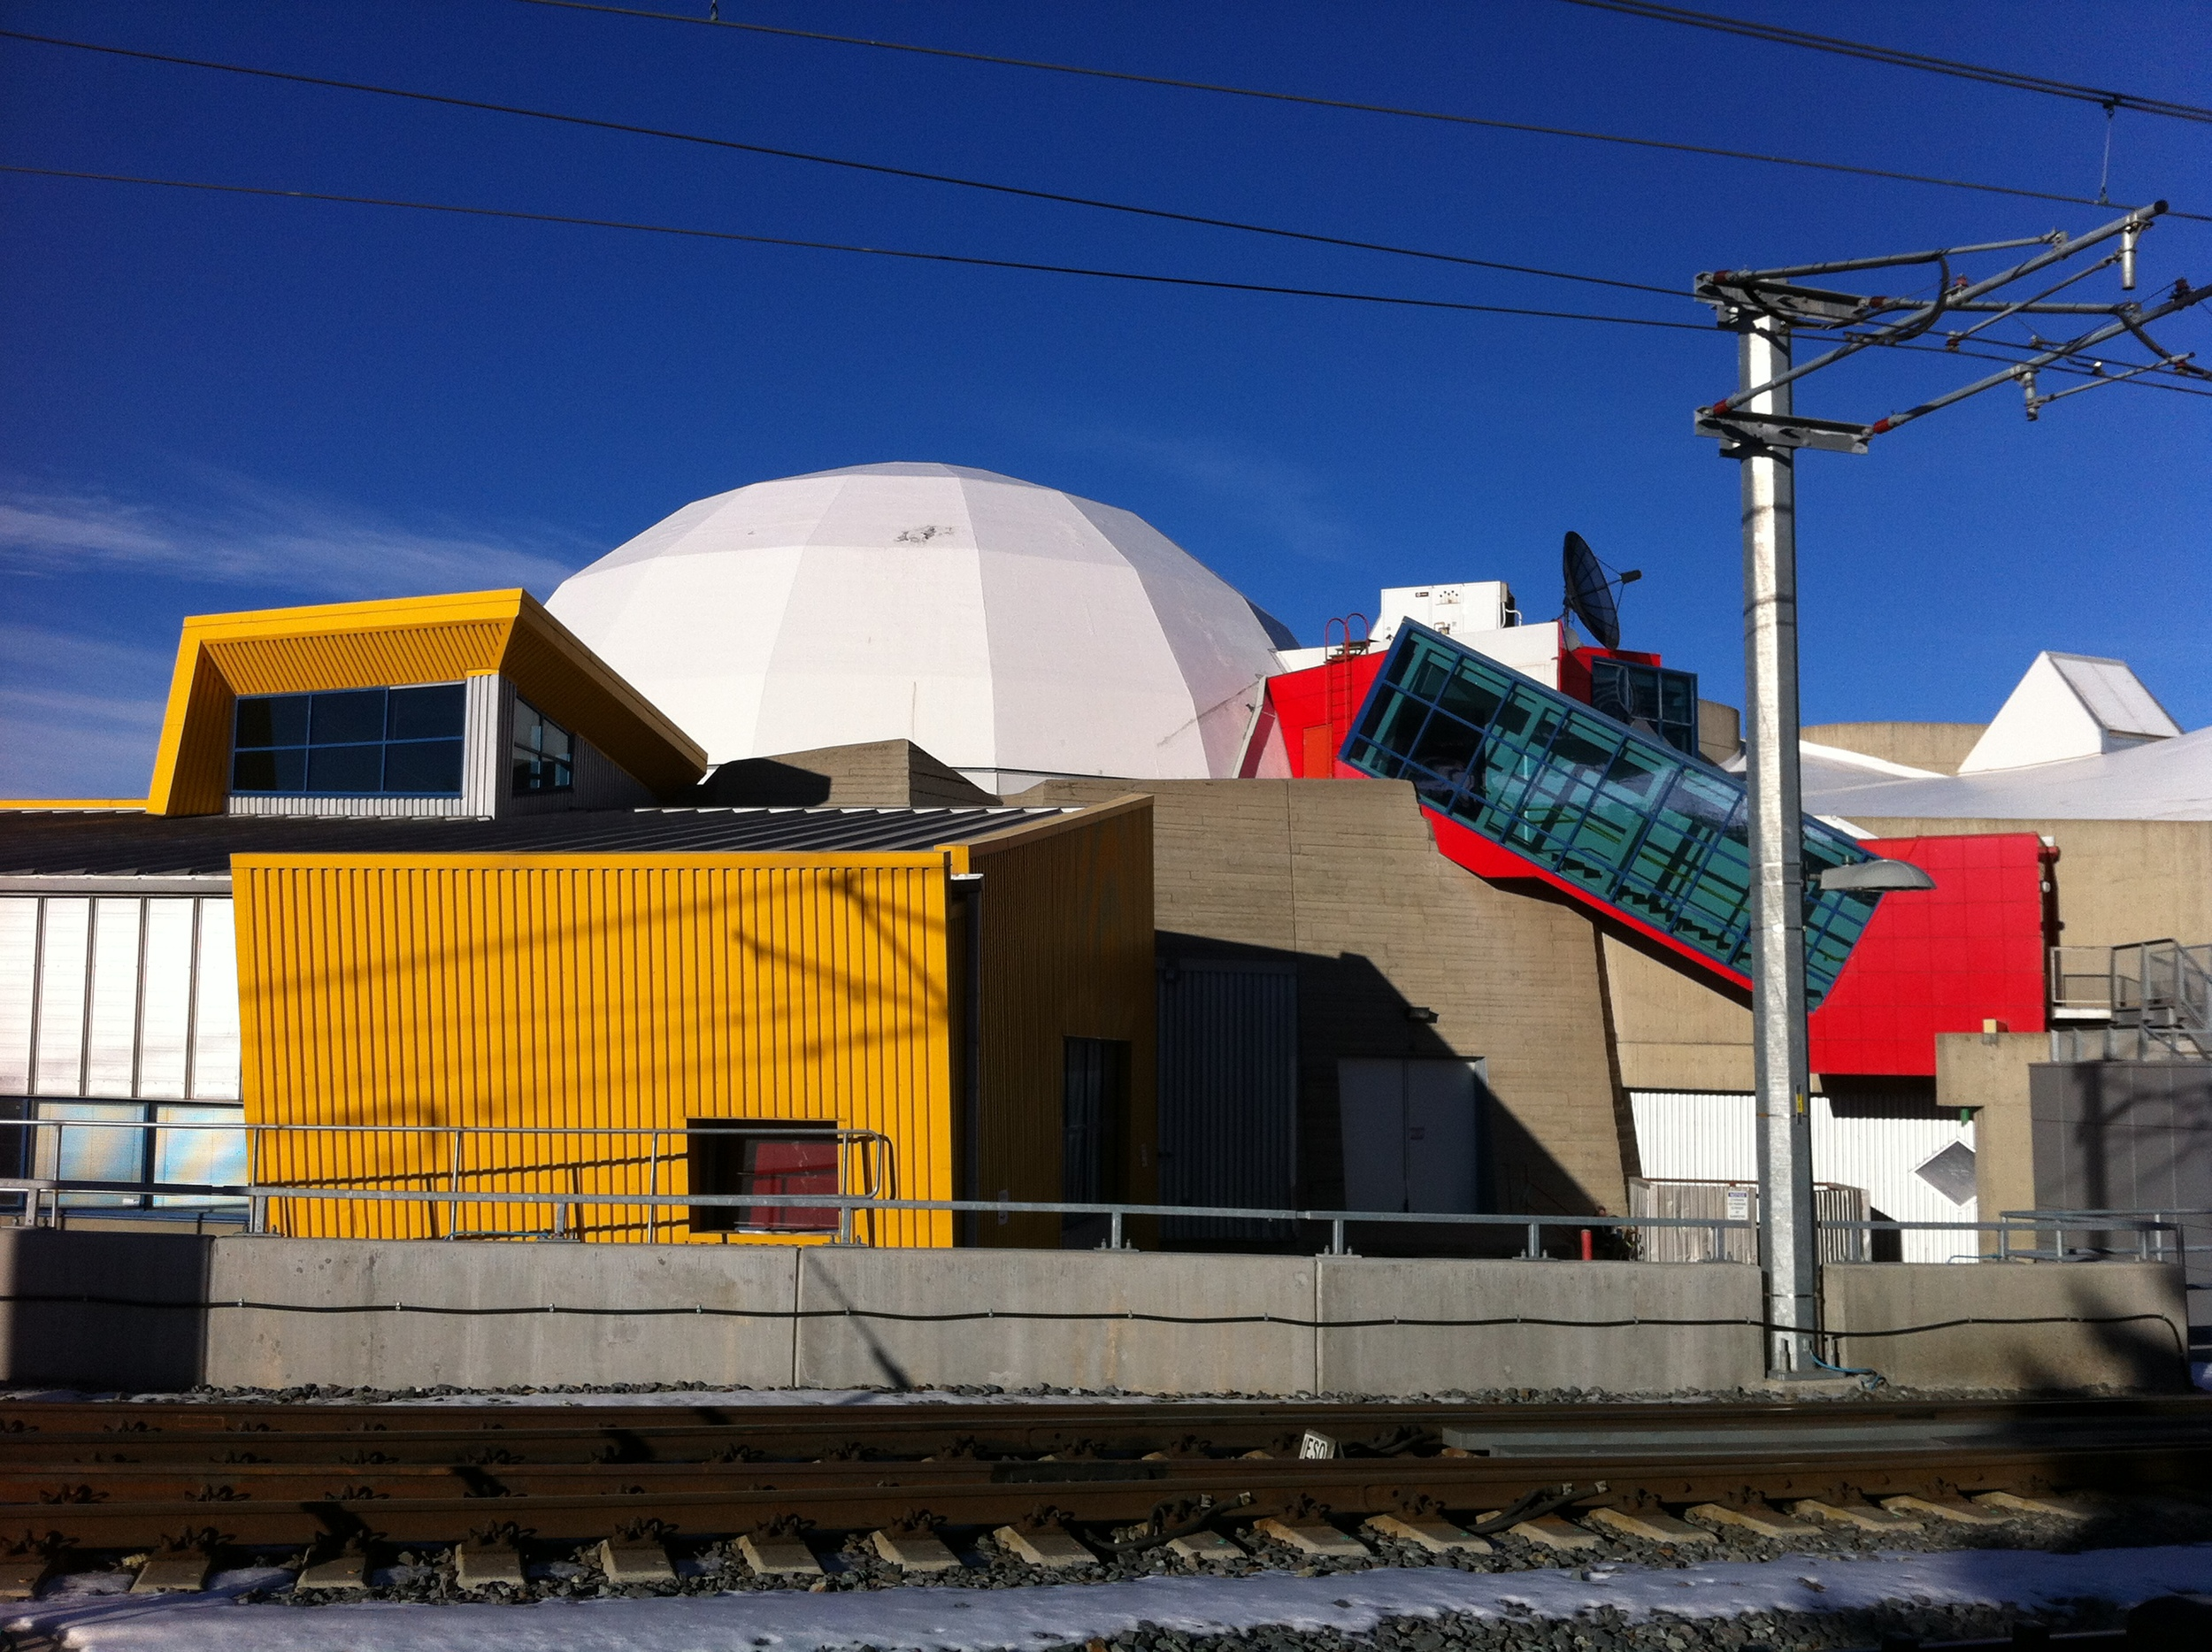 The old Science Centre looks like a modern work of art with its crayola colours and mix of angular and dome shapes.  It is like a mega cubist sculpture.